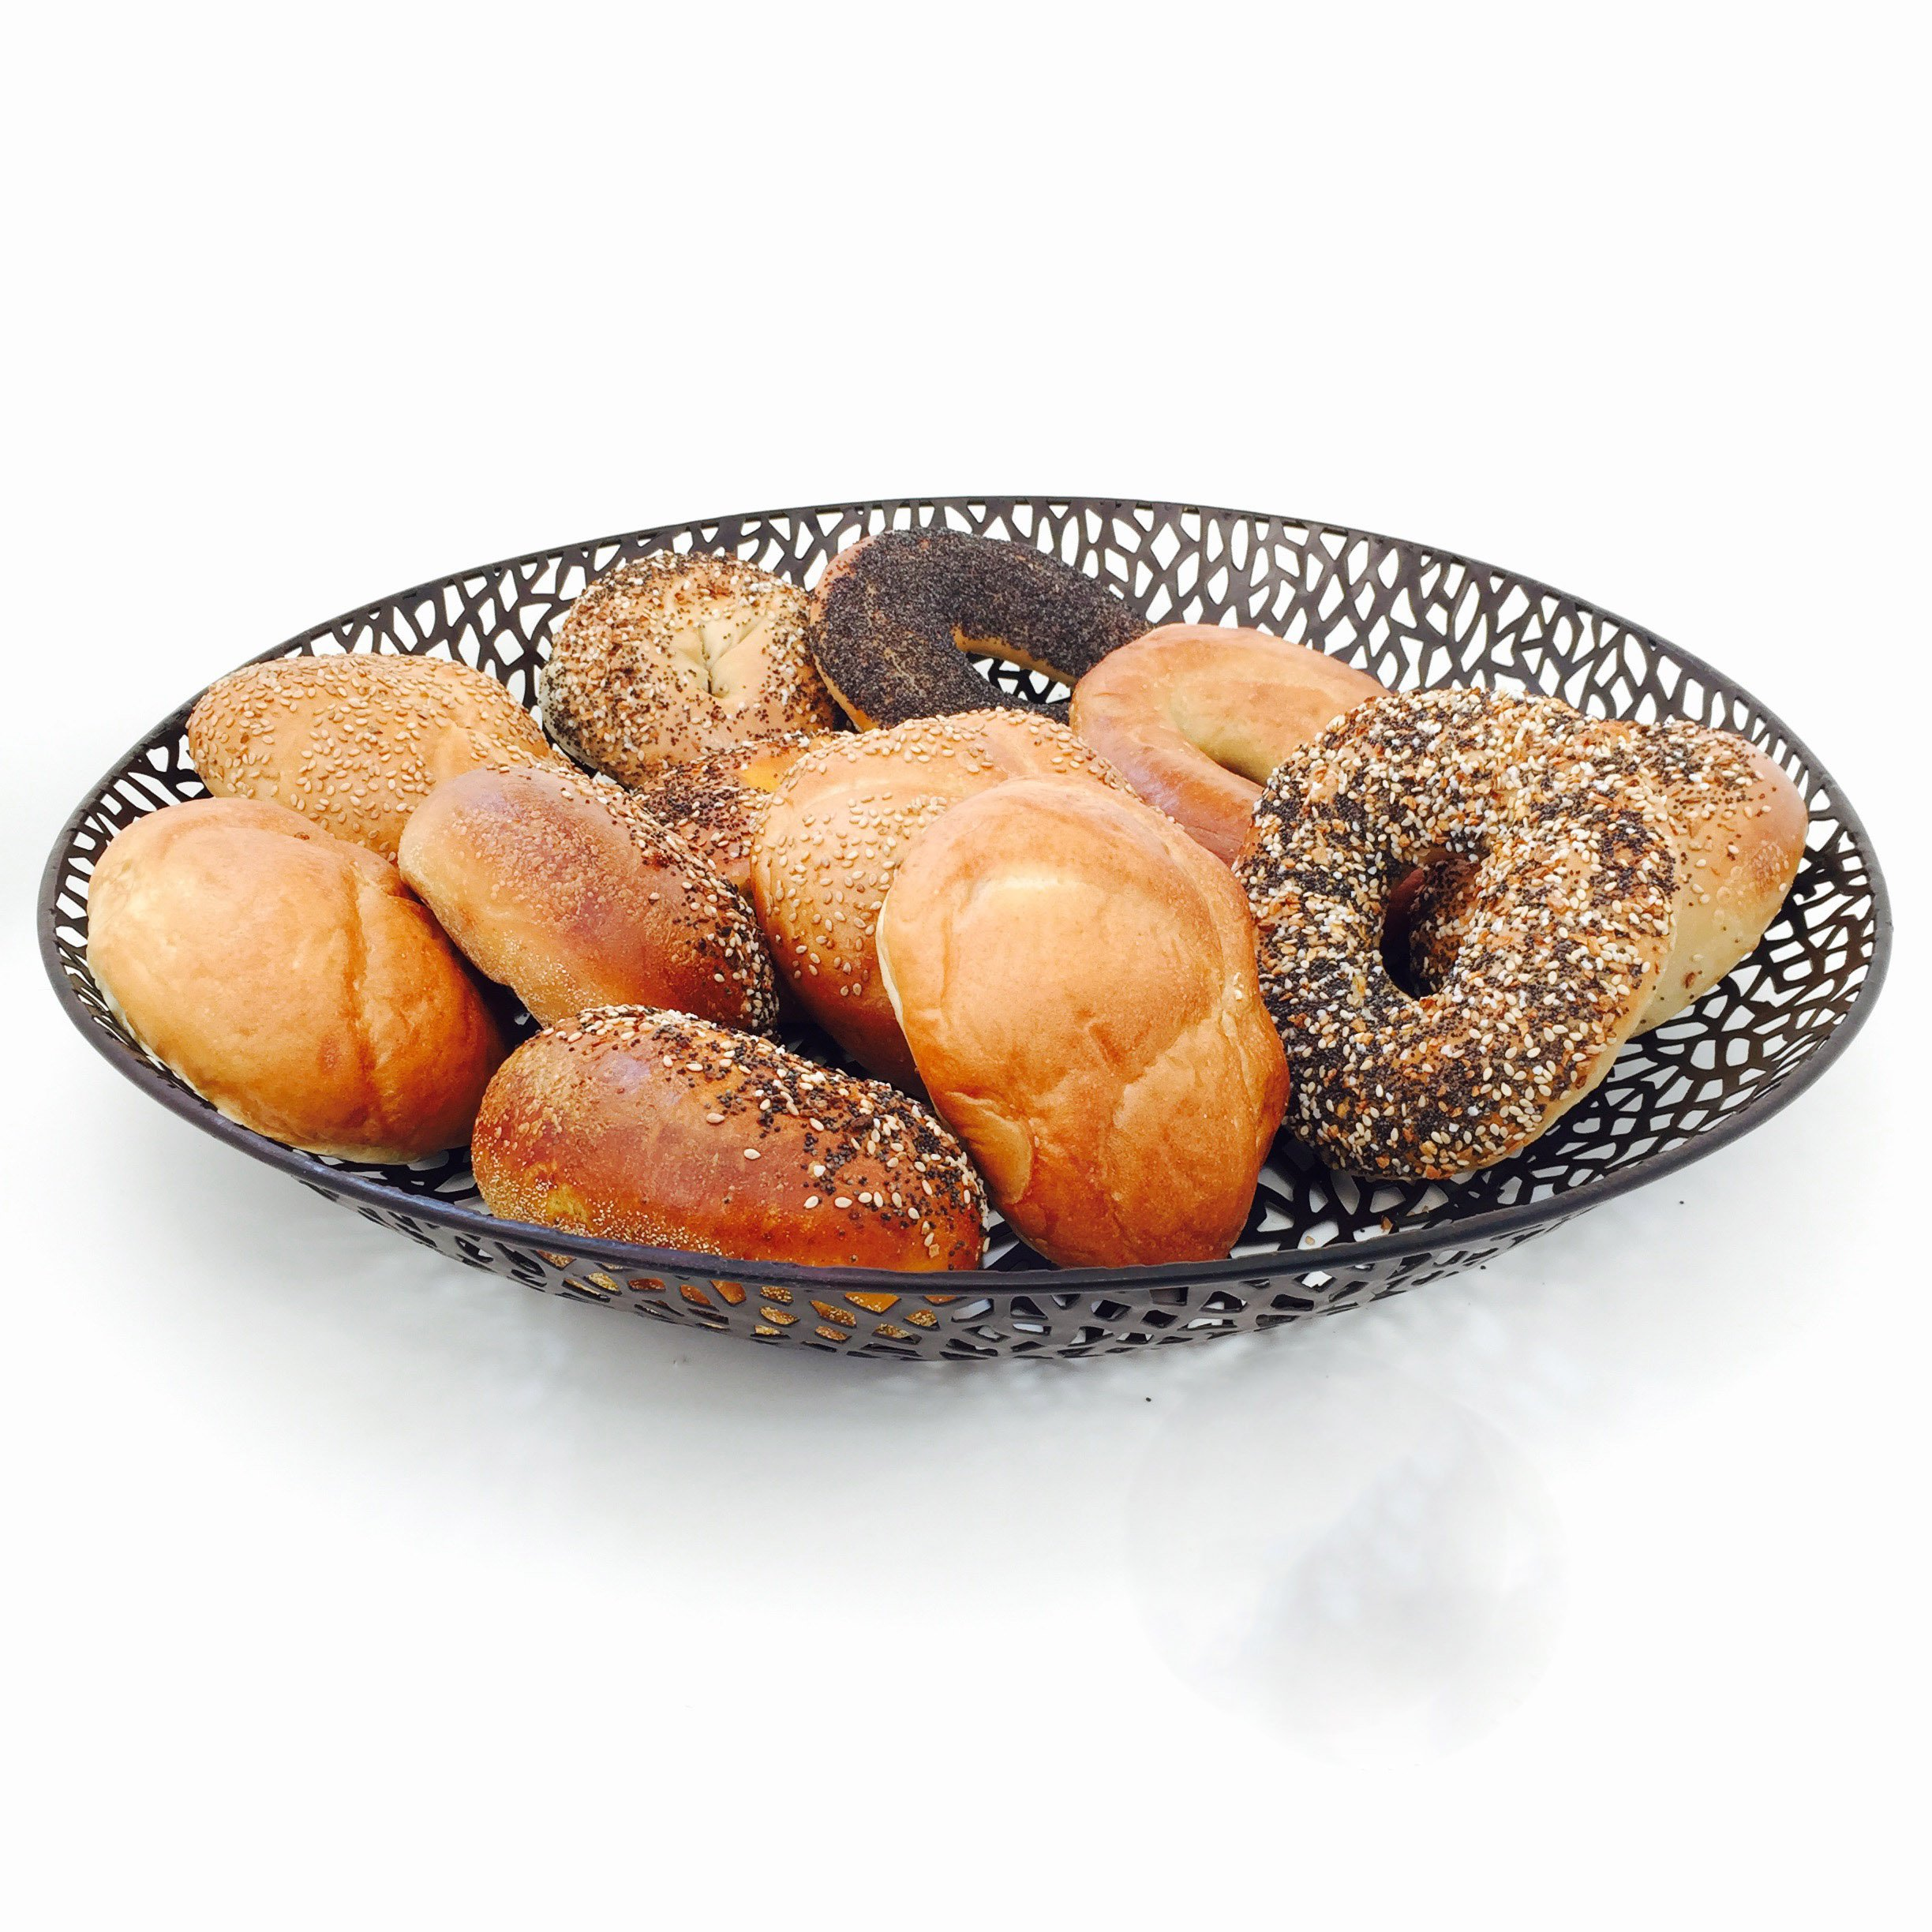 Whole House Worlds The Super Oversized Metal Basket for Serving Bread or Fruit, 18 ½ Inches By